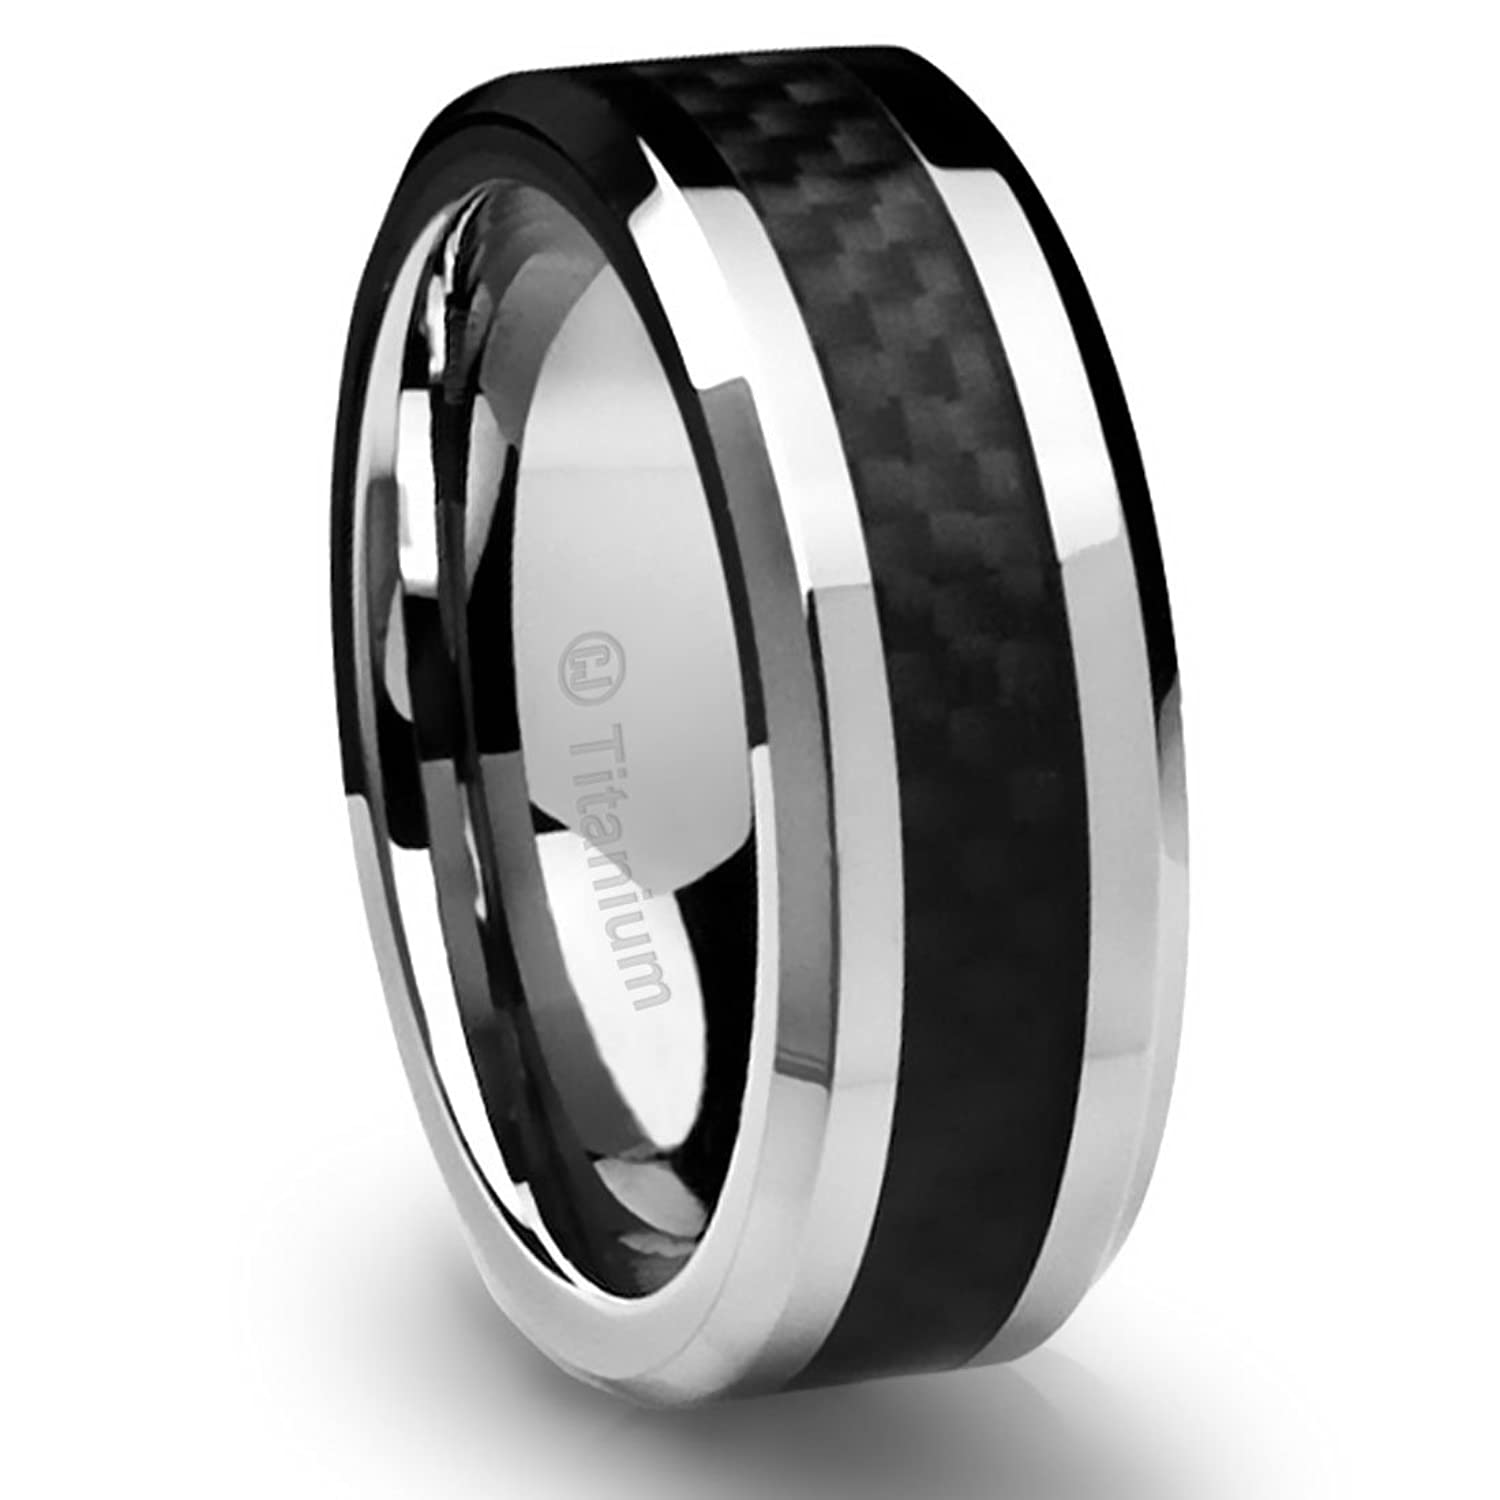 8MM Mens Titanium Ring Wedding Band Black Carbon Fiber Inlay And Beveled Edges